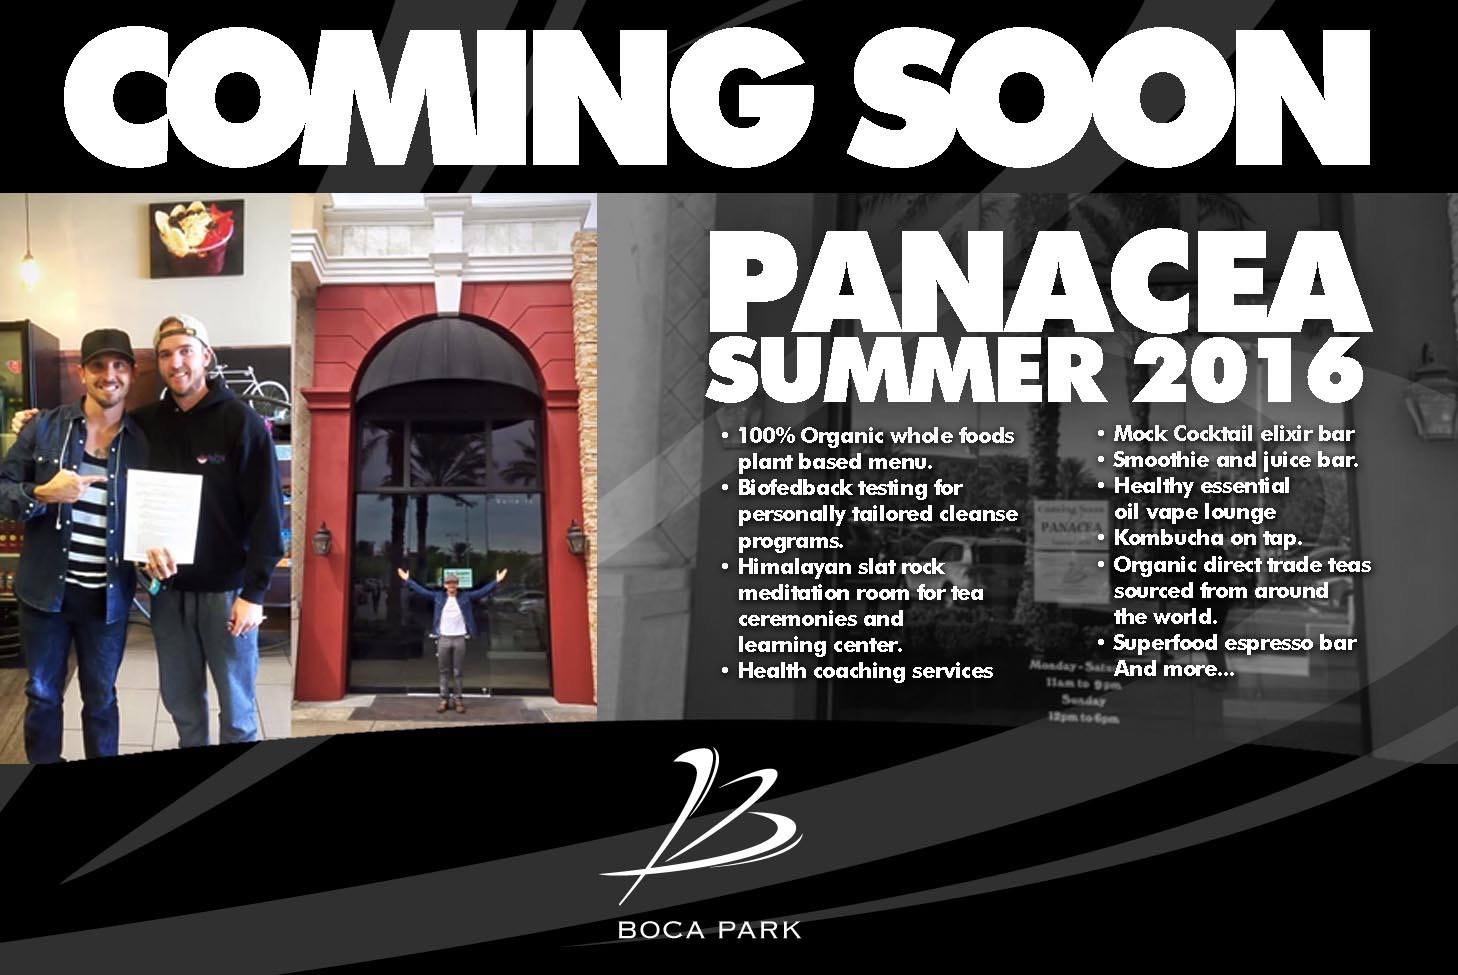 Coming to Las Vegas summer of 2016, Panacea. This new concept merges vegan dining, a health-focused nightlife, wellness classes, essential oil vaping and more from Shane Stuart. For more on the vegan dining scene and vegan lifestyle in Las Vegas, visit www.vegansbaby.com/vegansbaby2018